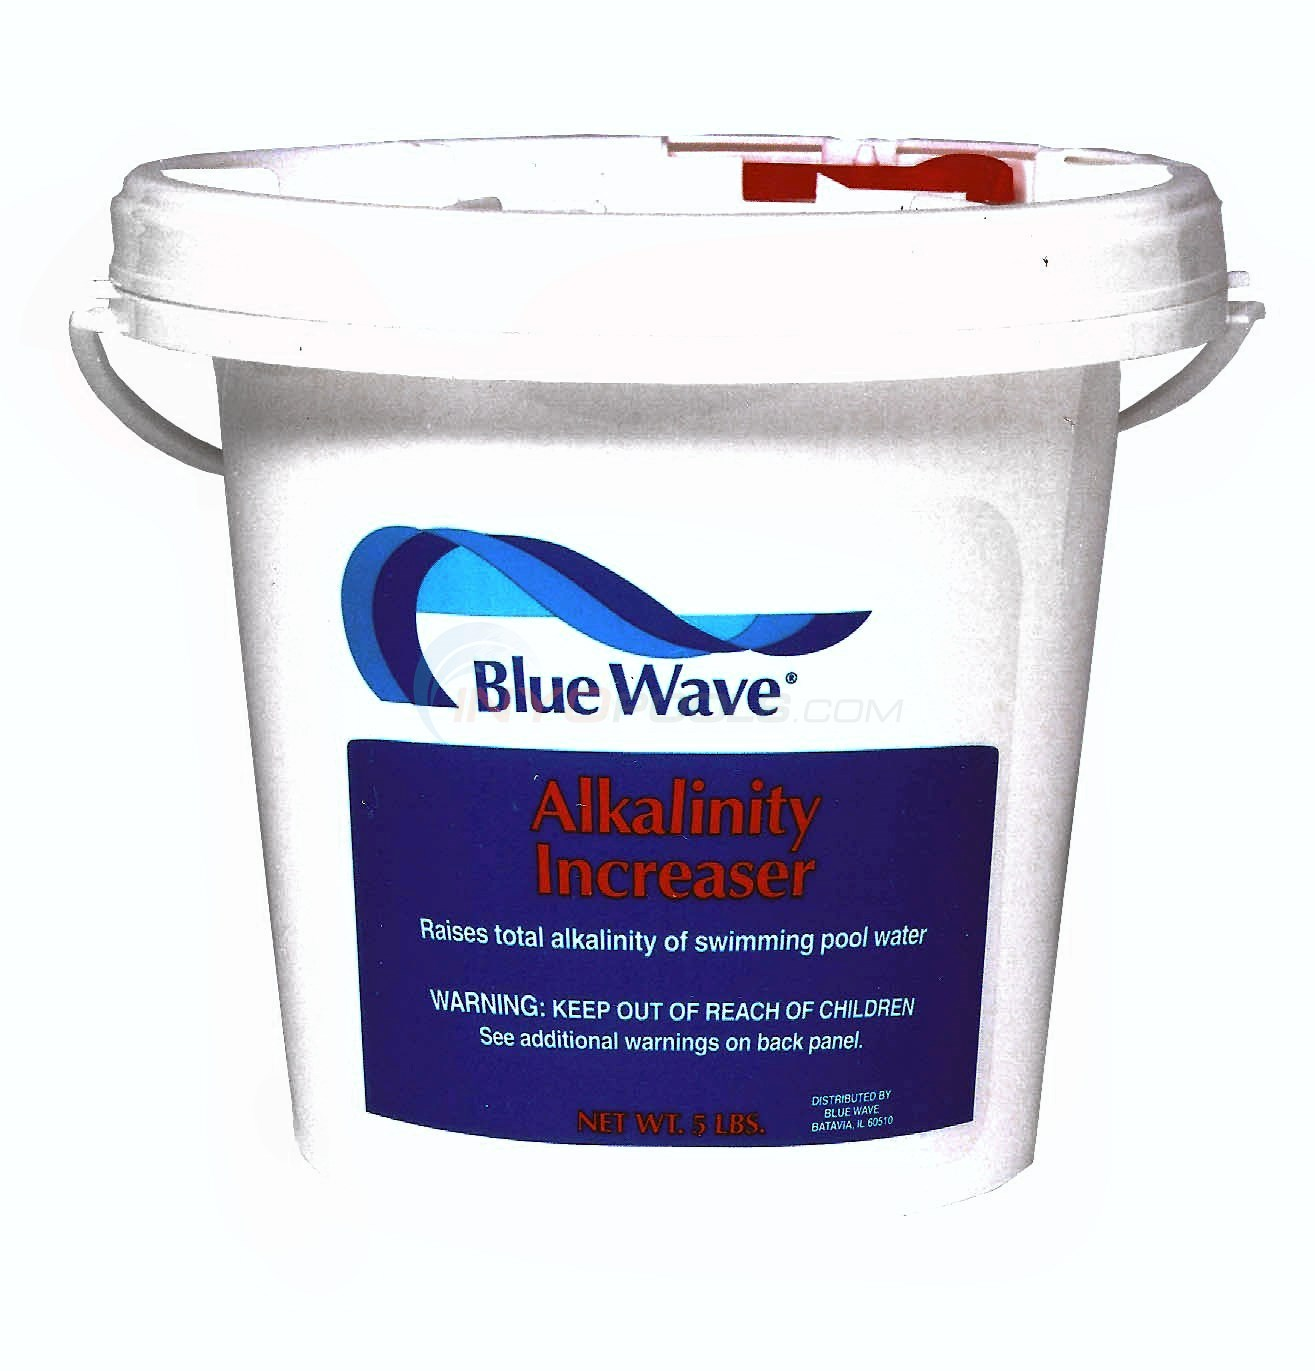 Blue Wave Alkalinity Increaser 5 lb Bag - NY531